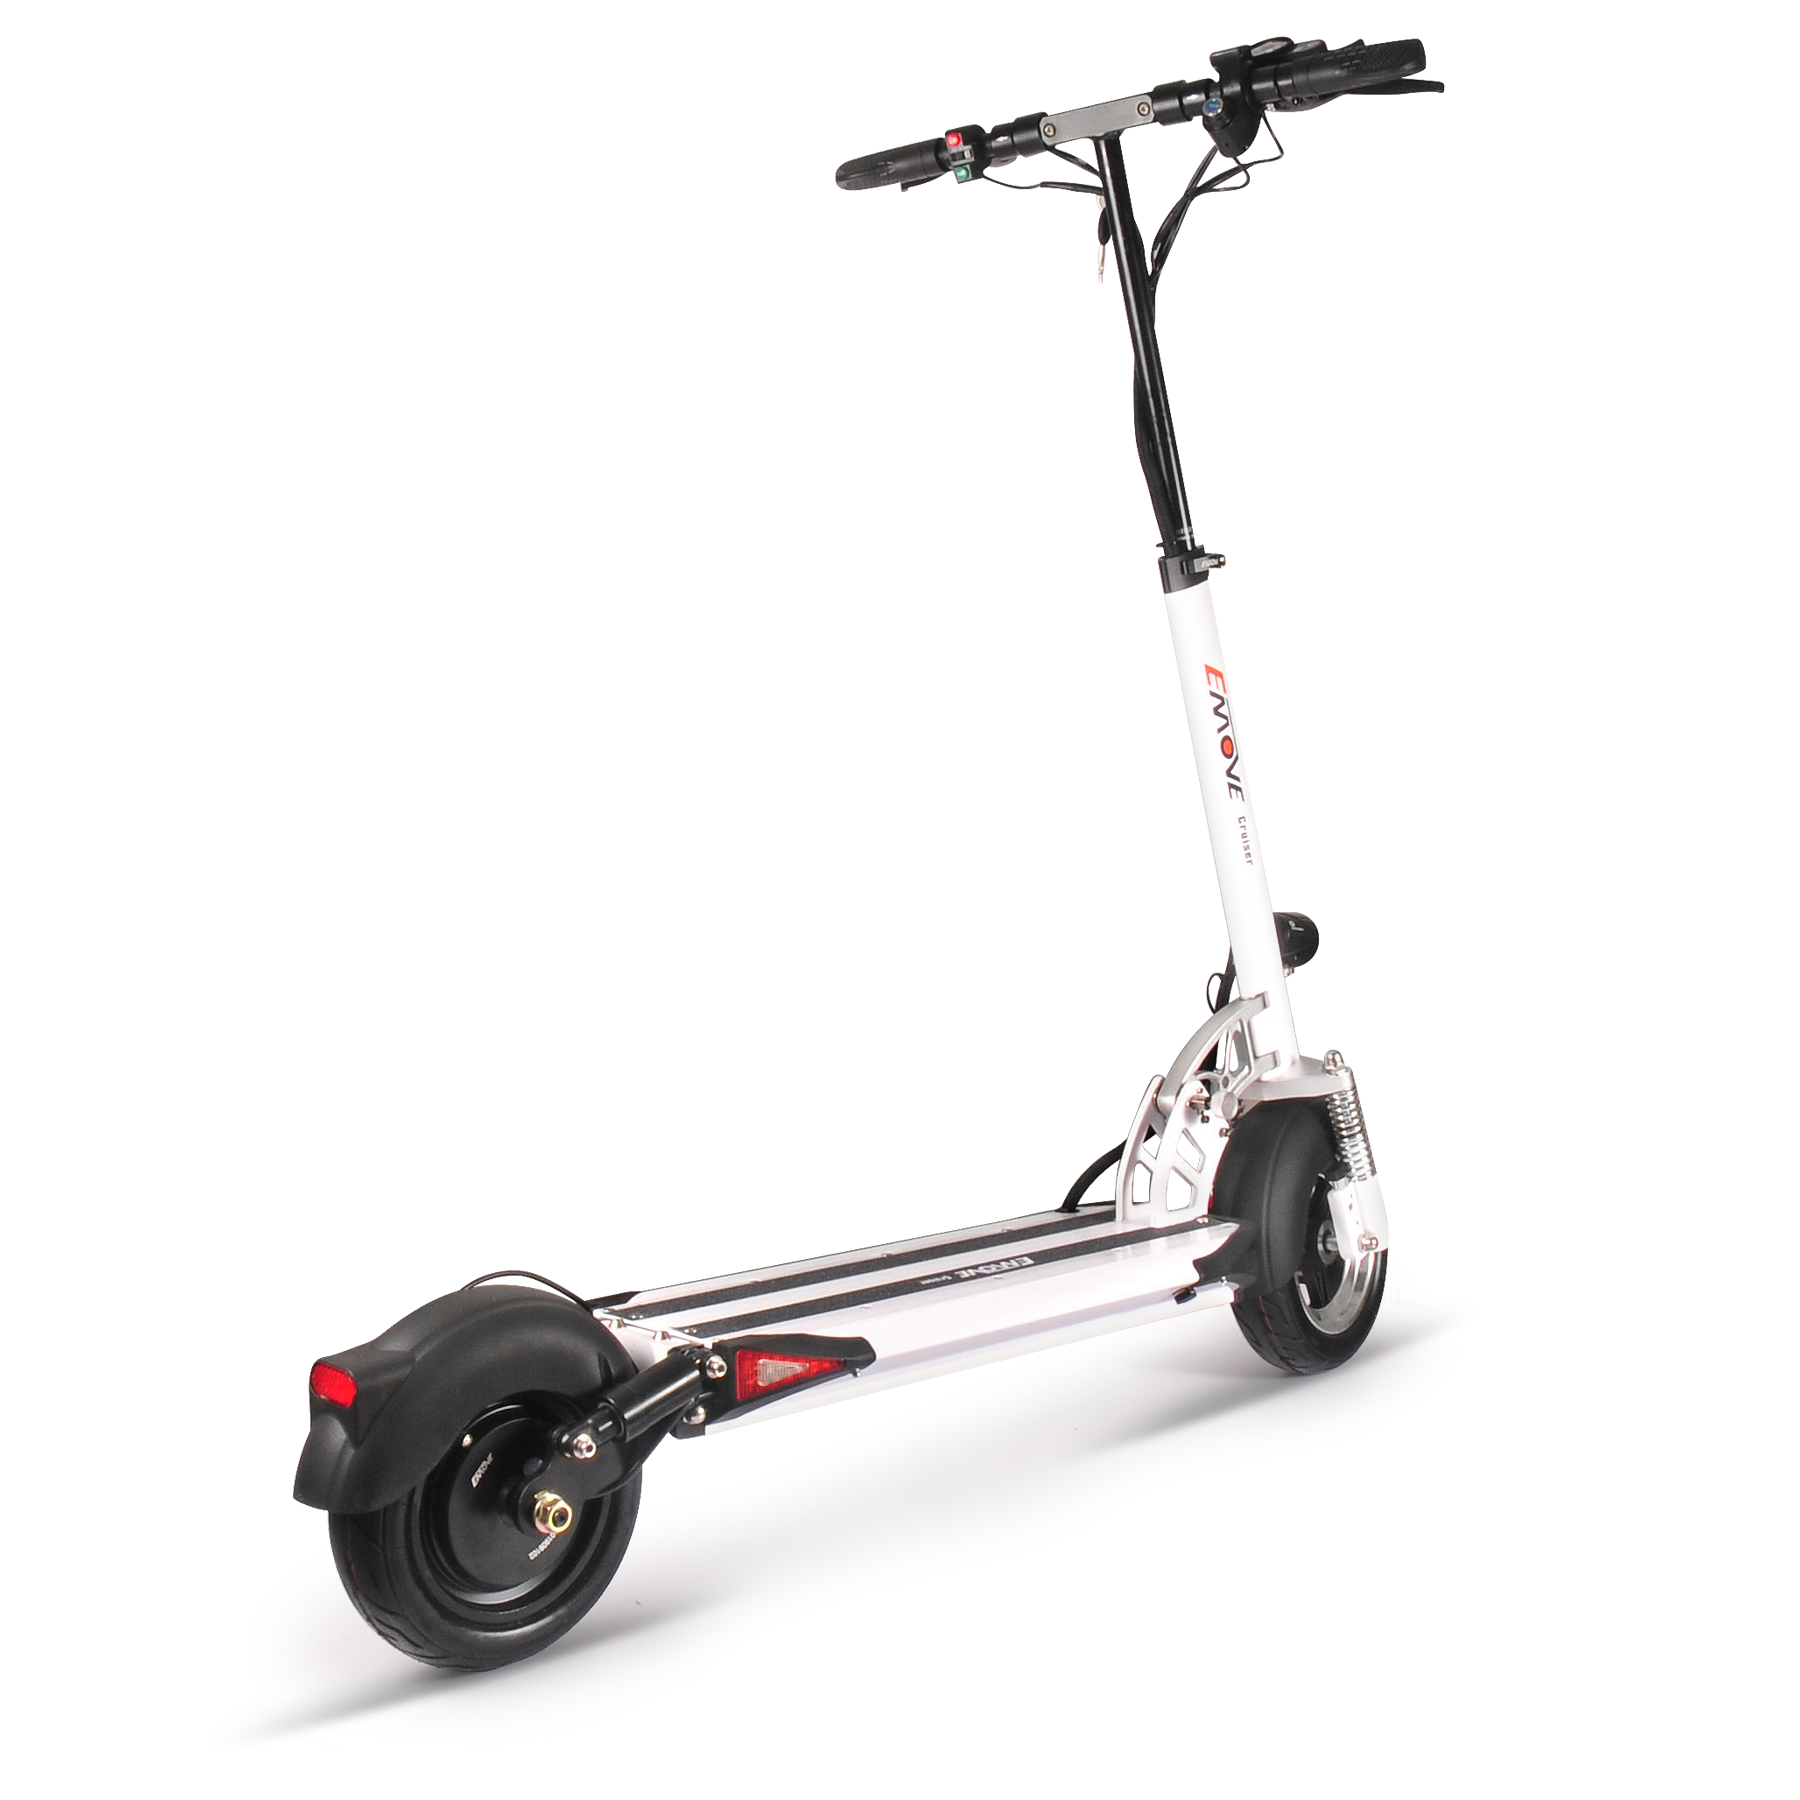 EMOVE Cruiser Electric Scooter - White Side View